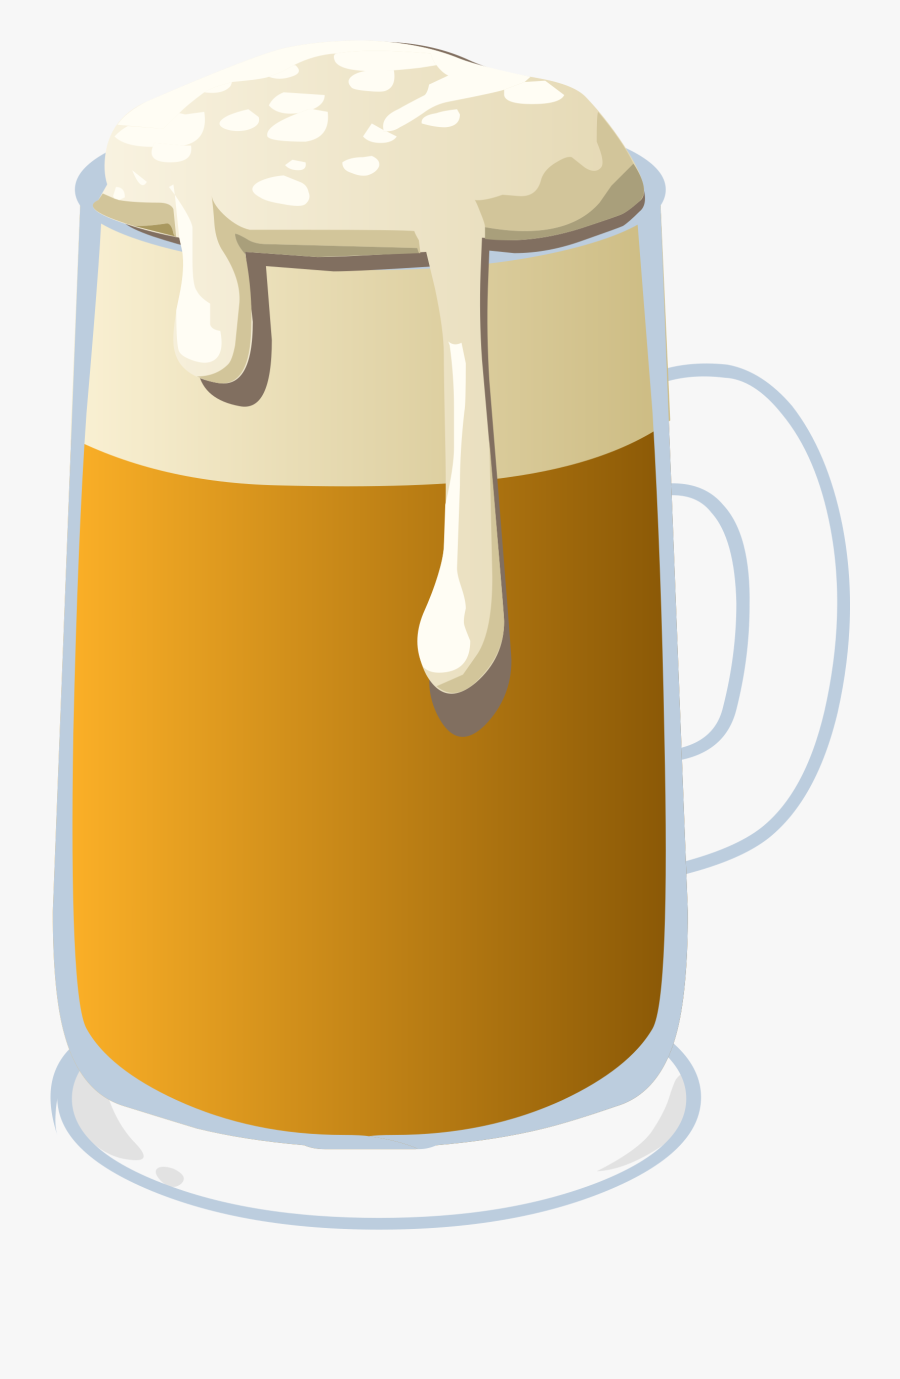 Beer Free To Use Cliparts - Beer Stein Clipart, Transparent Clipart